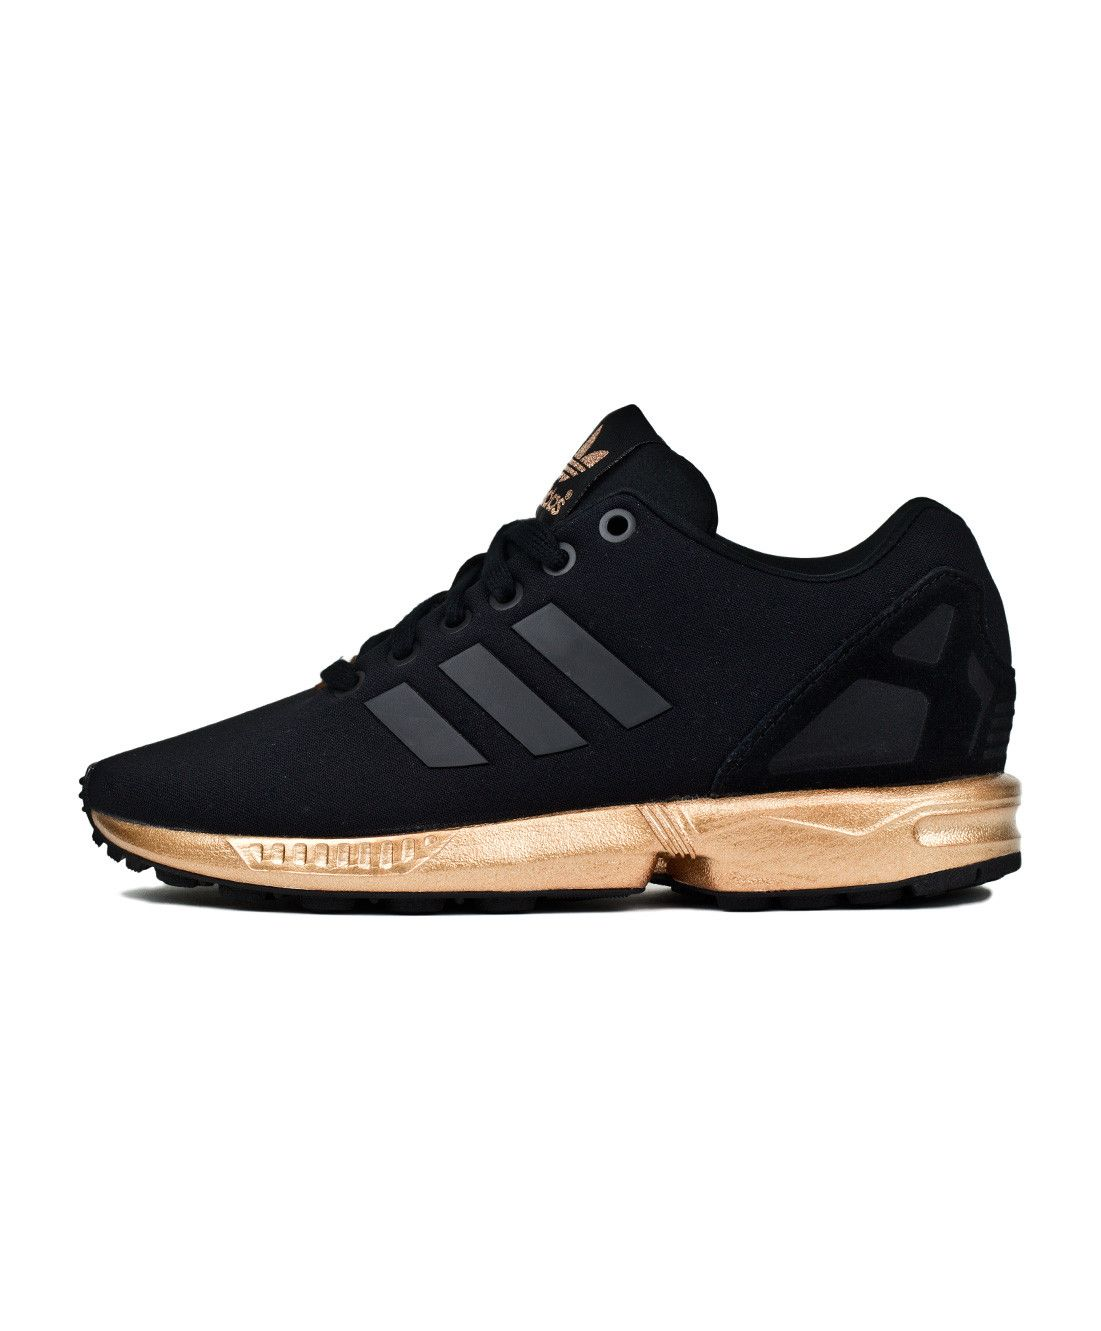 Adidas Zx Flux Black Gold Sole